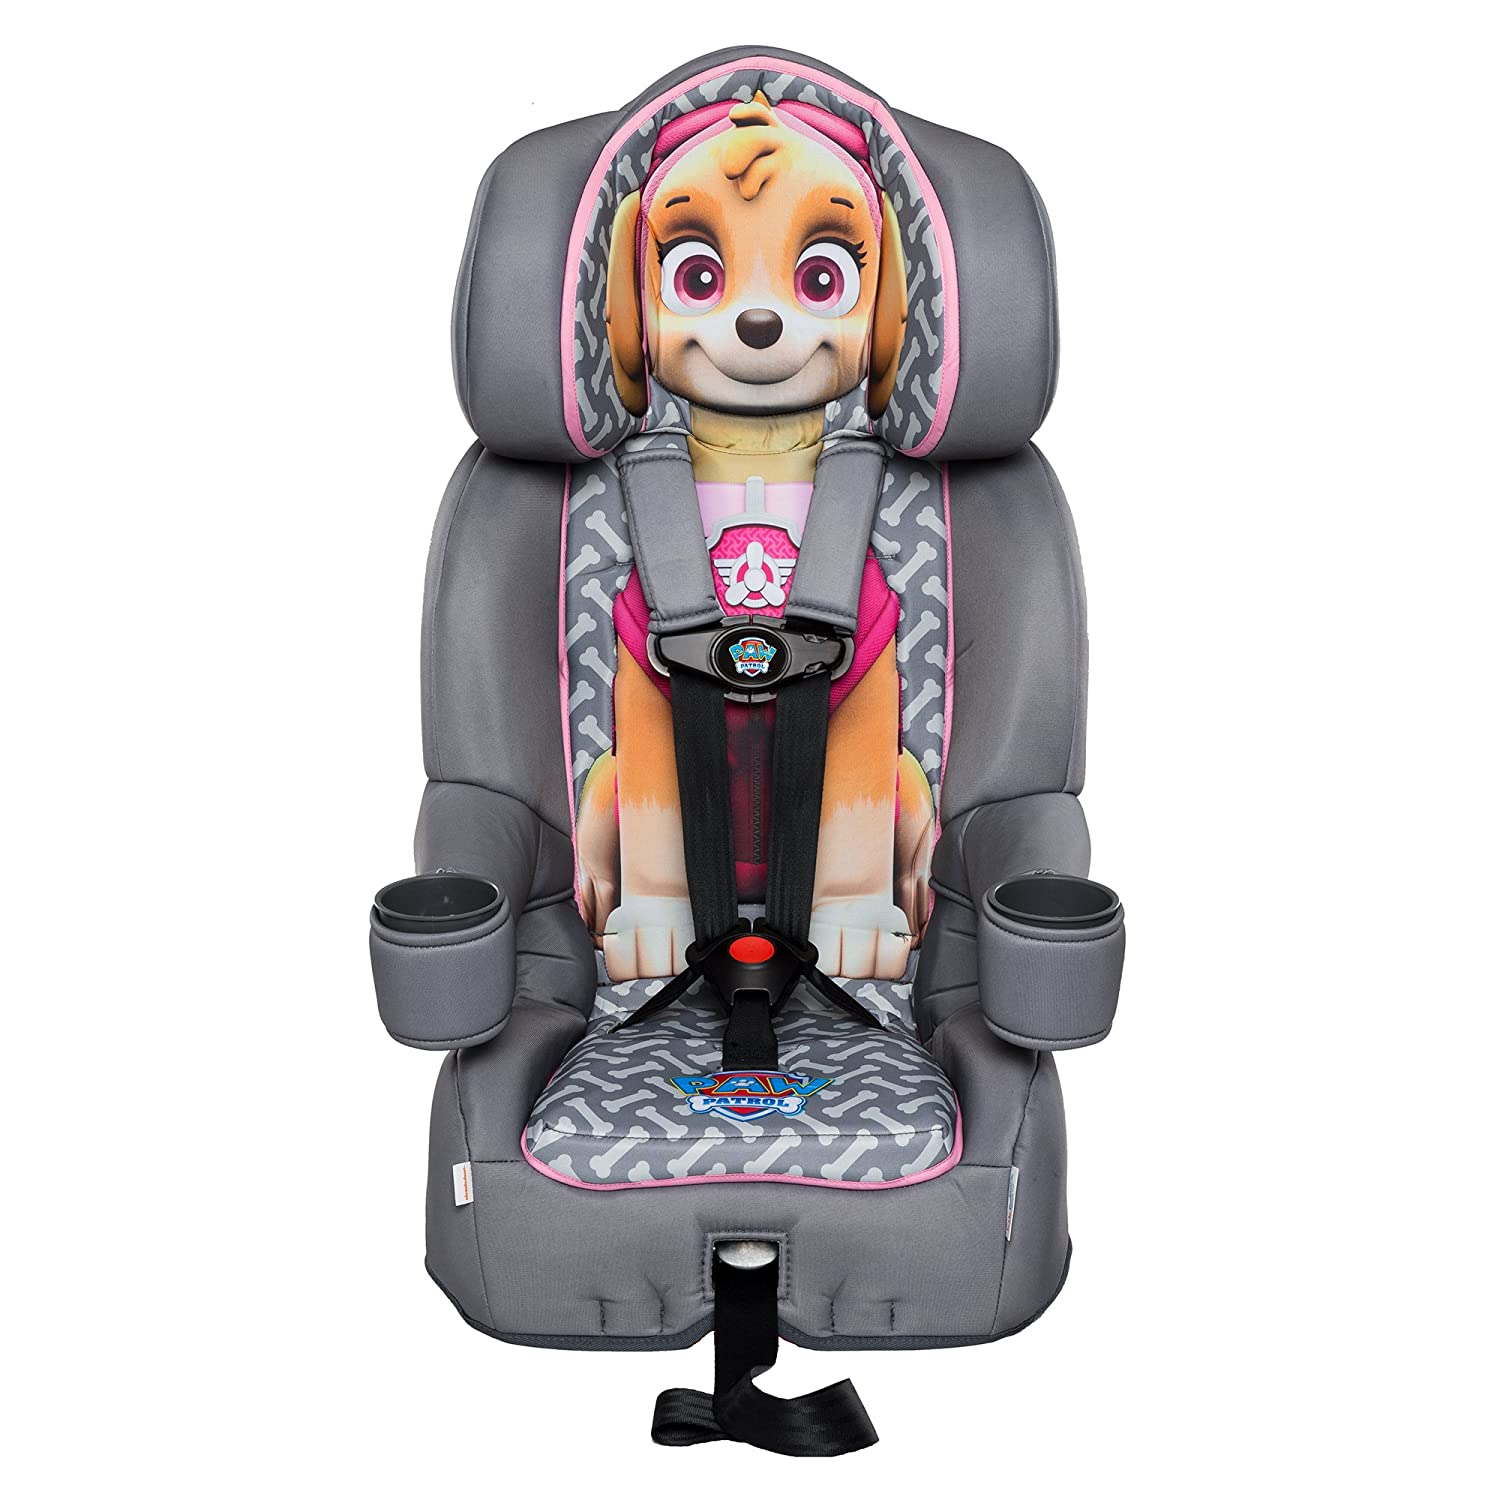 KidsEmbrace Paw Patrol Booster Car Seat, Nickelodeon Chase Combination Seat, 5 Point Harness, Blue 3001CHS